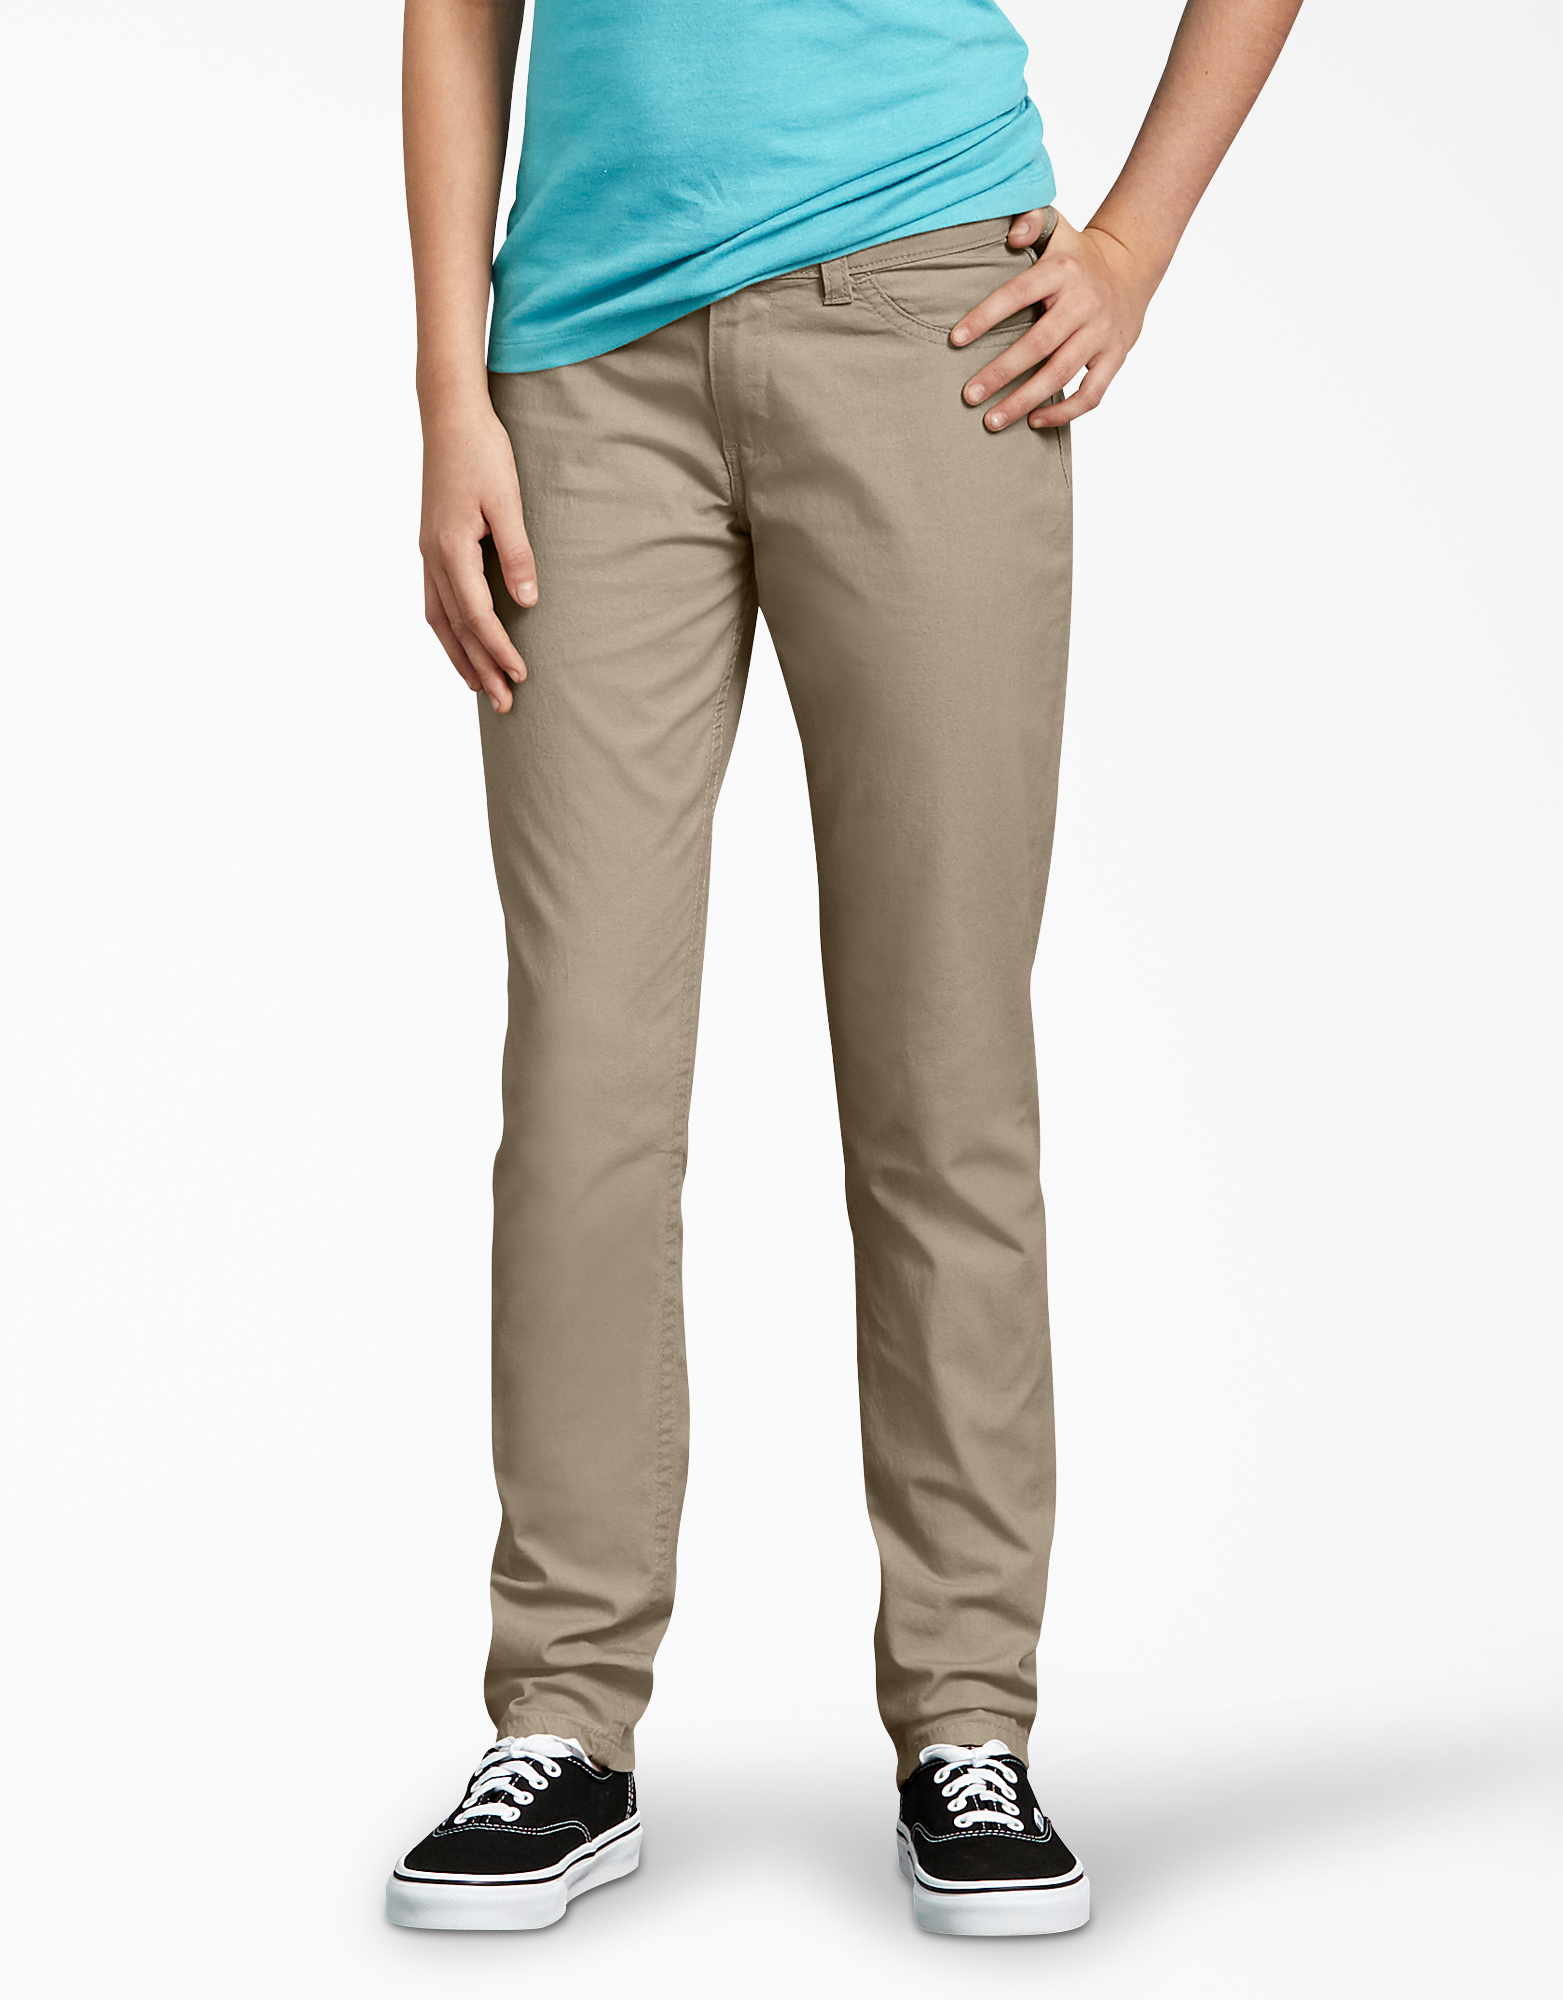 Girls' Super Skinny Fit Skinny Leg Pants, 7-16 - Desert Khaki (RDS)